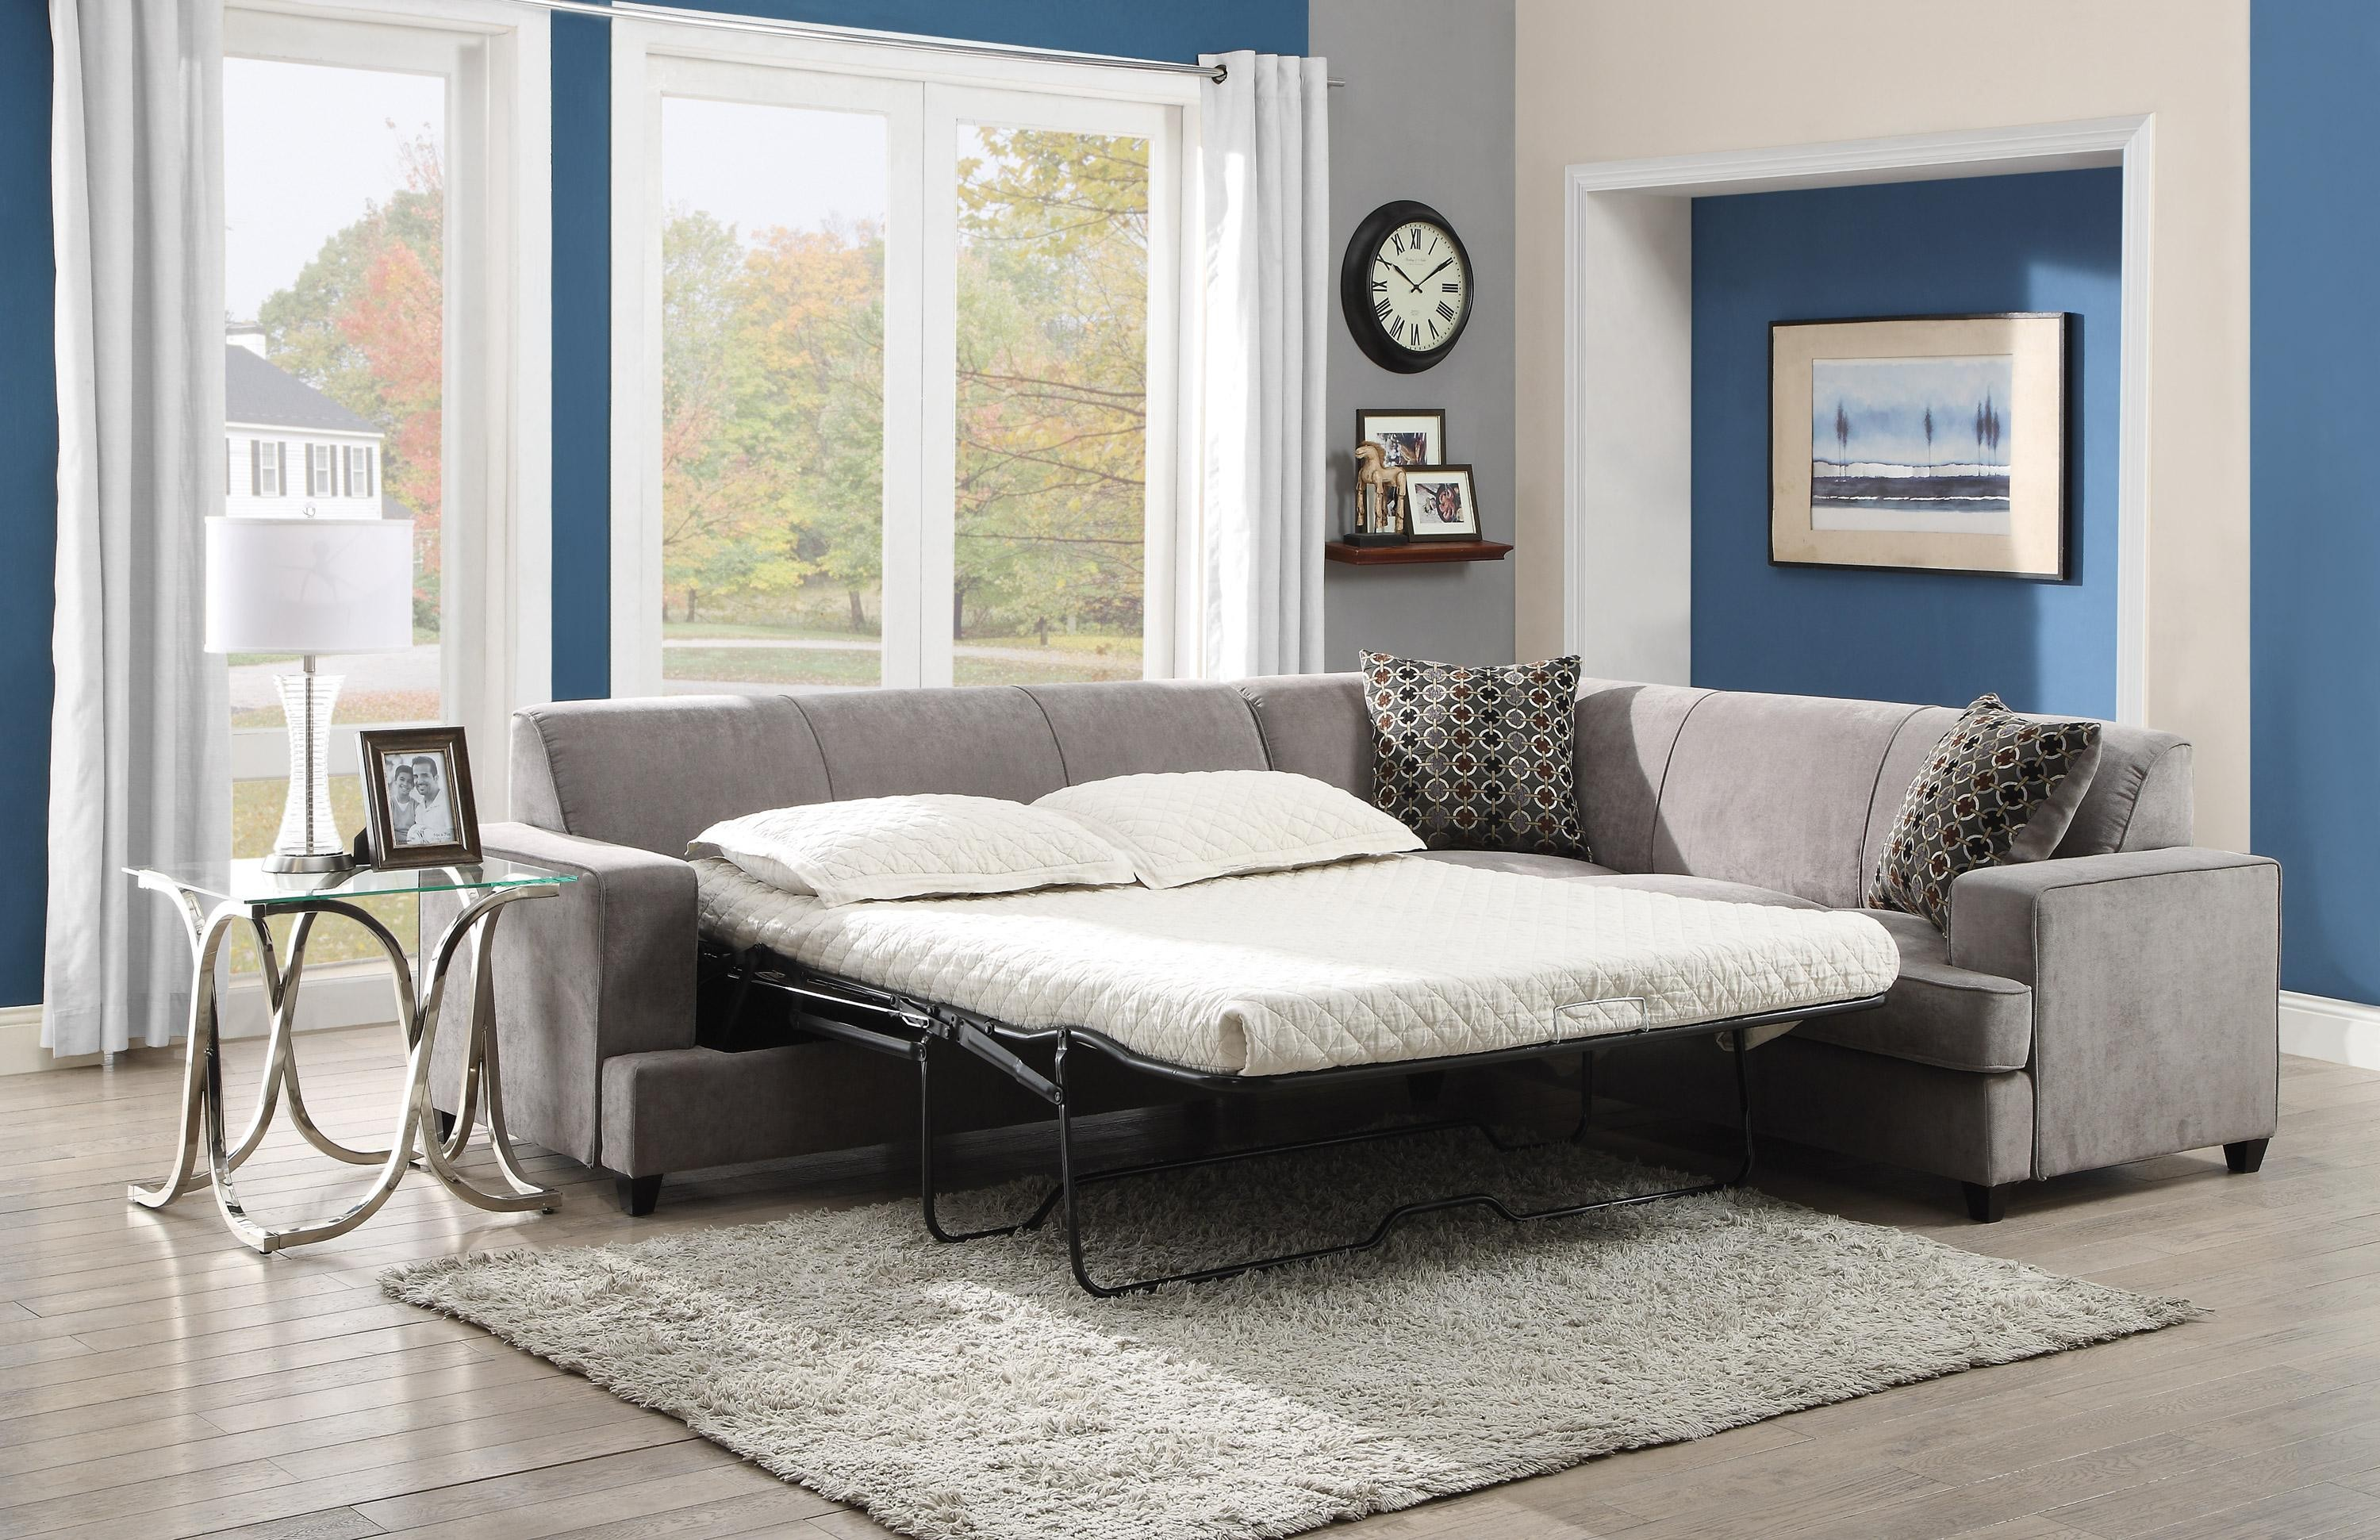 charming cheap sectional sofas in grey with white bedding on wooden floor plus wheat carpet matched with blue wall for living room decor ideas